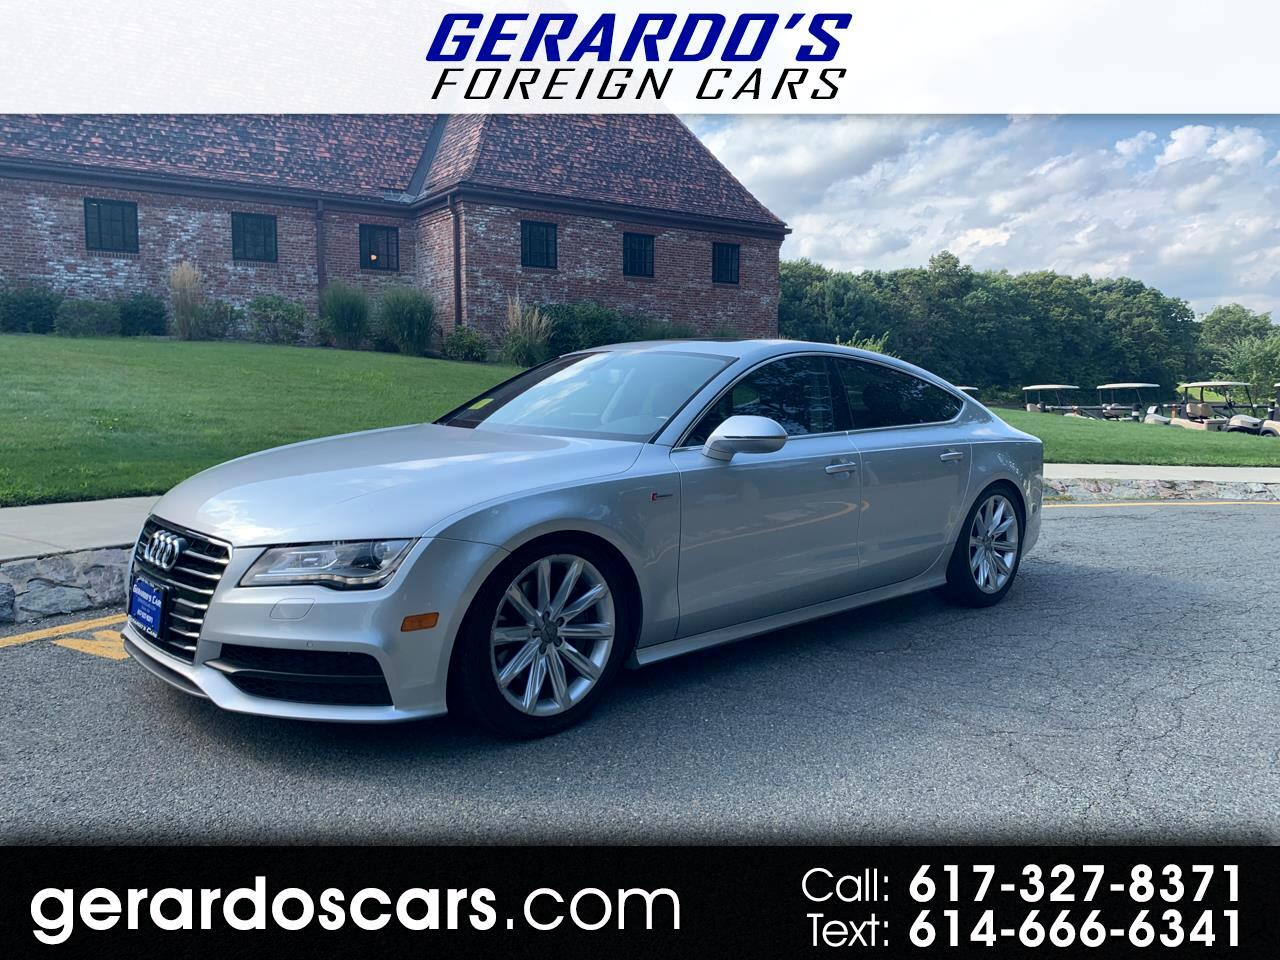 Is Audi A Foreign Car >> Used 2012 Audi A7 For Sale In Roslindale Ma 02131 Gerardo S